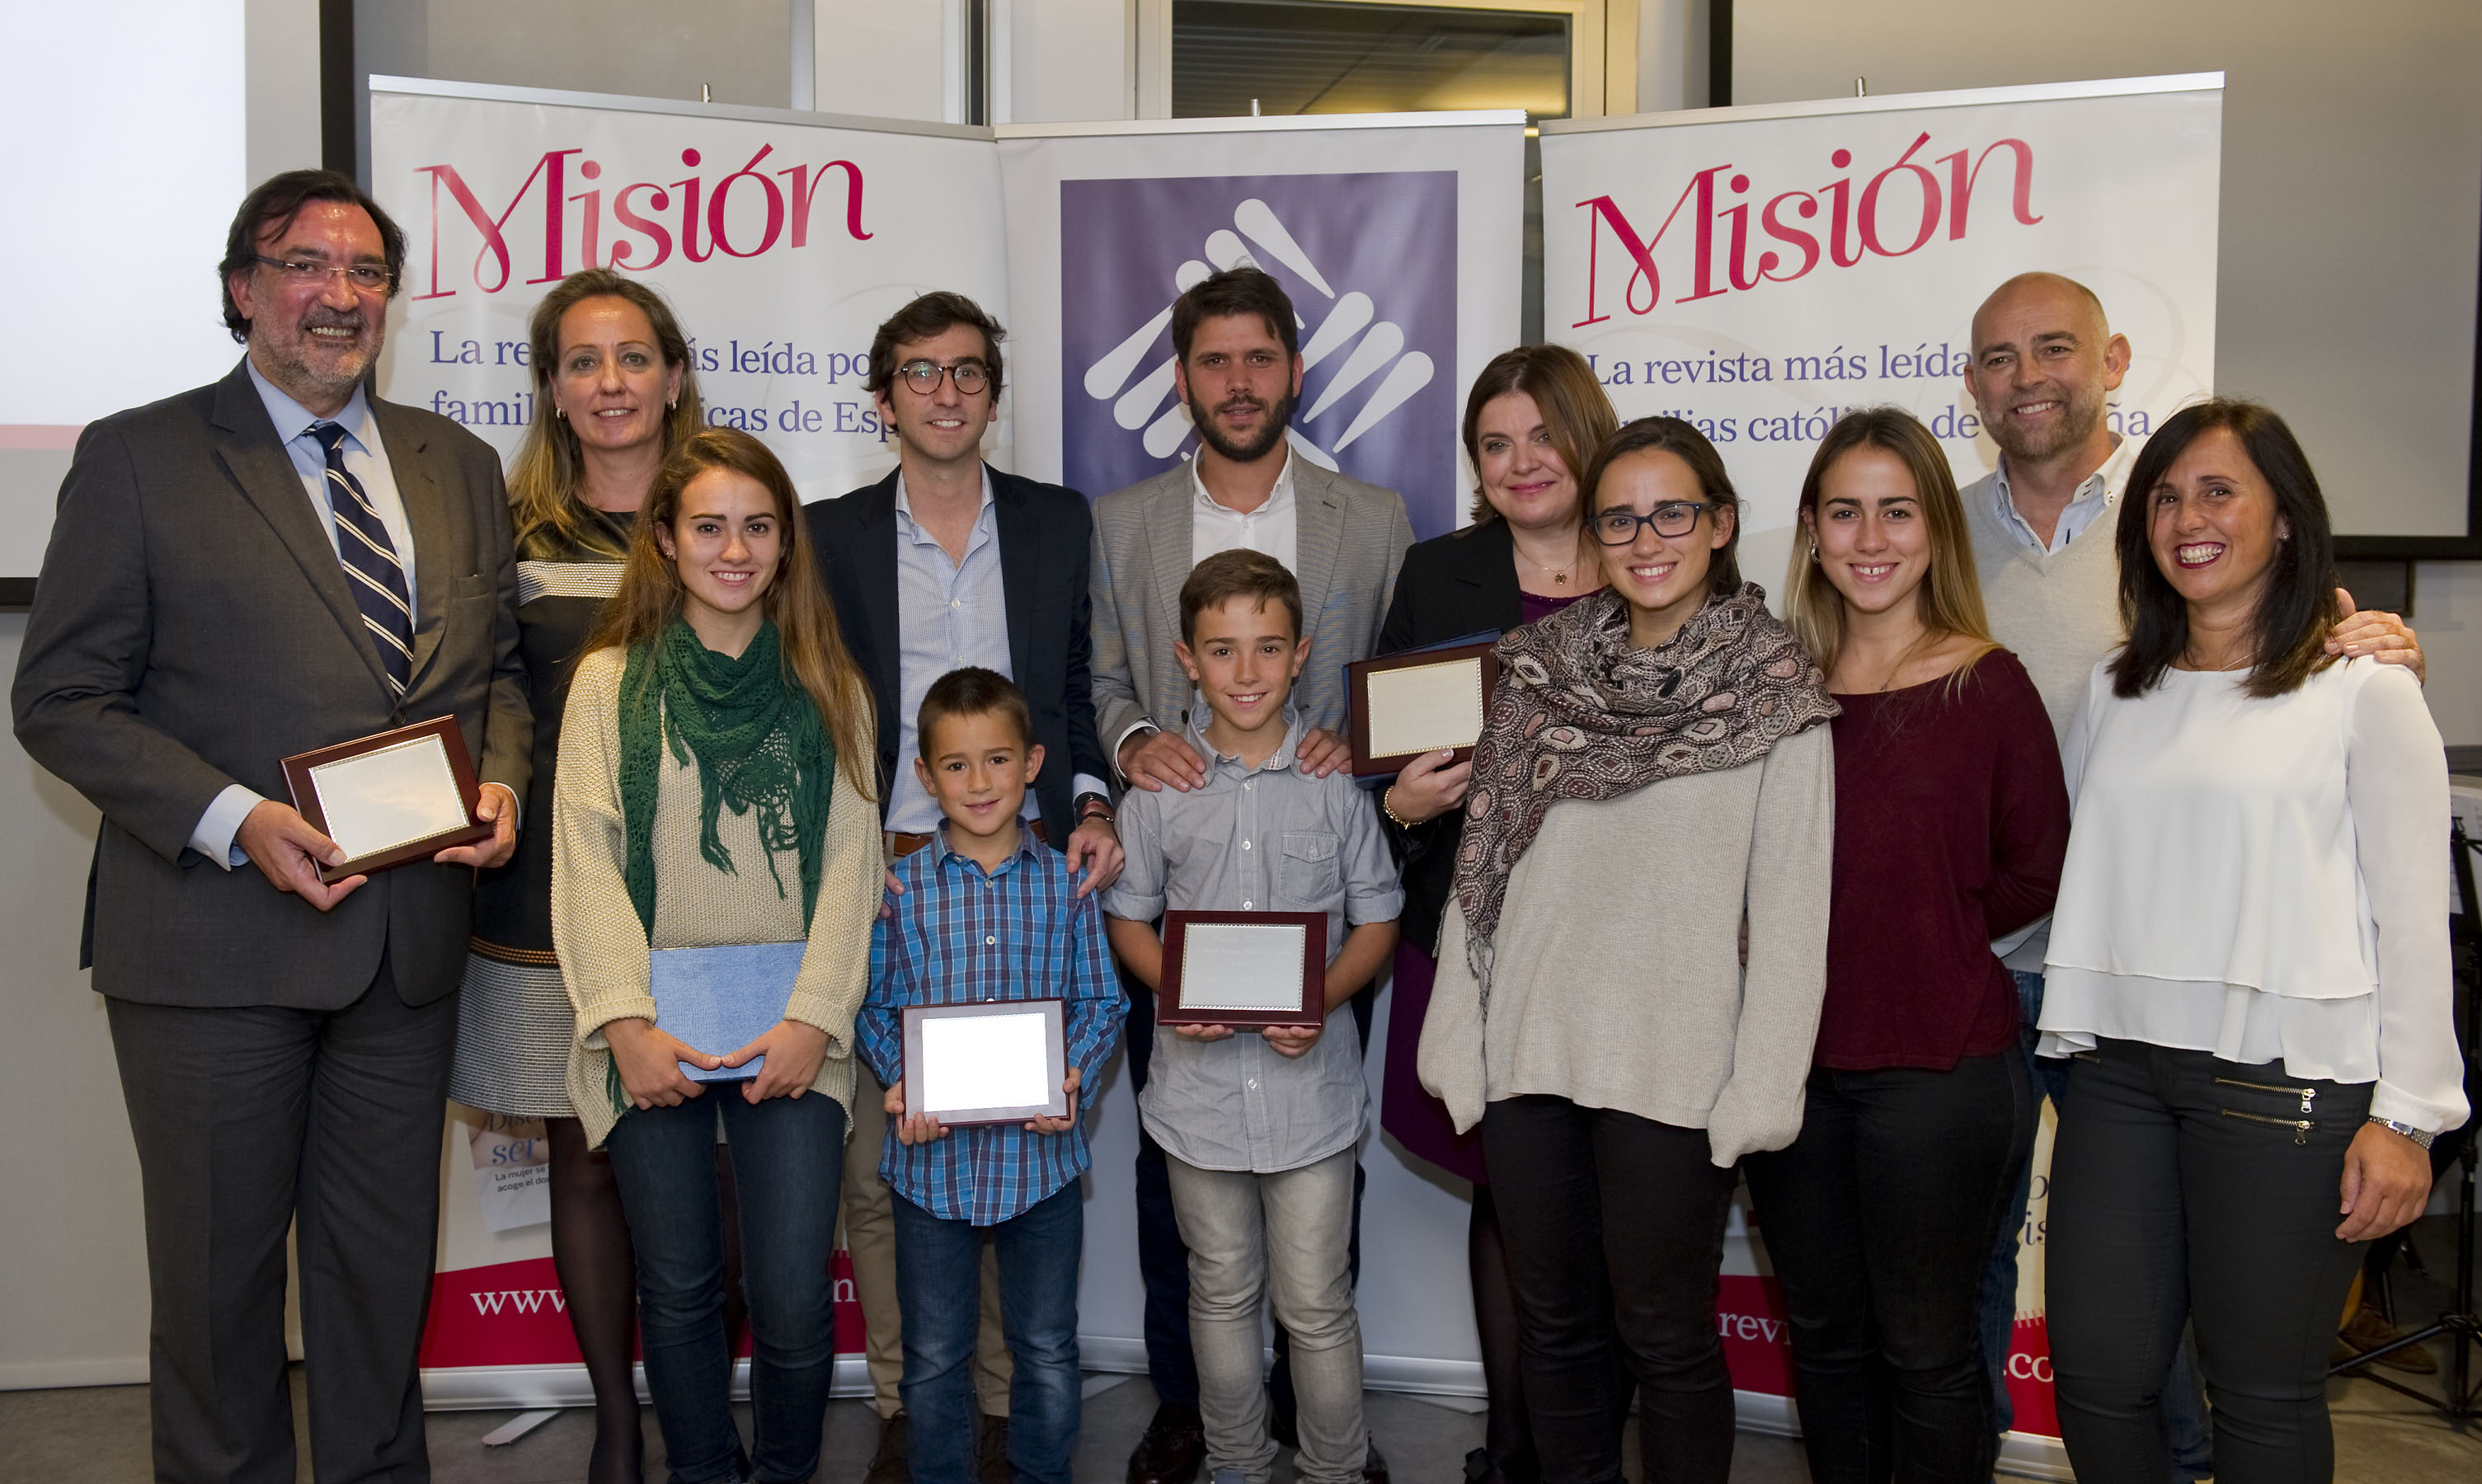 The winners of the 2015 Family Awards